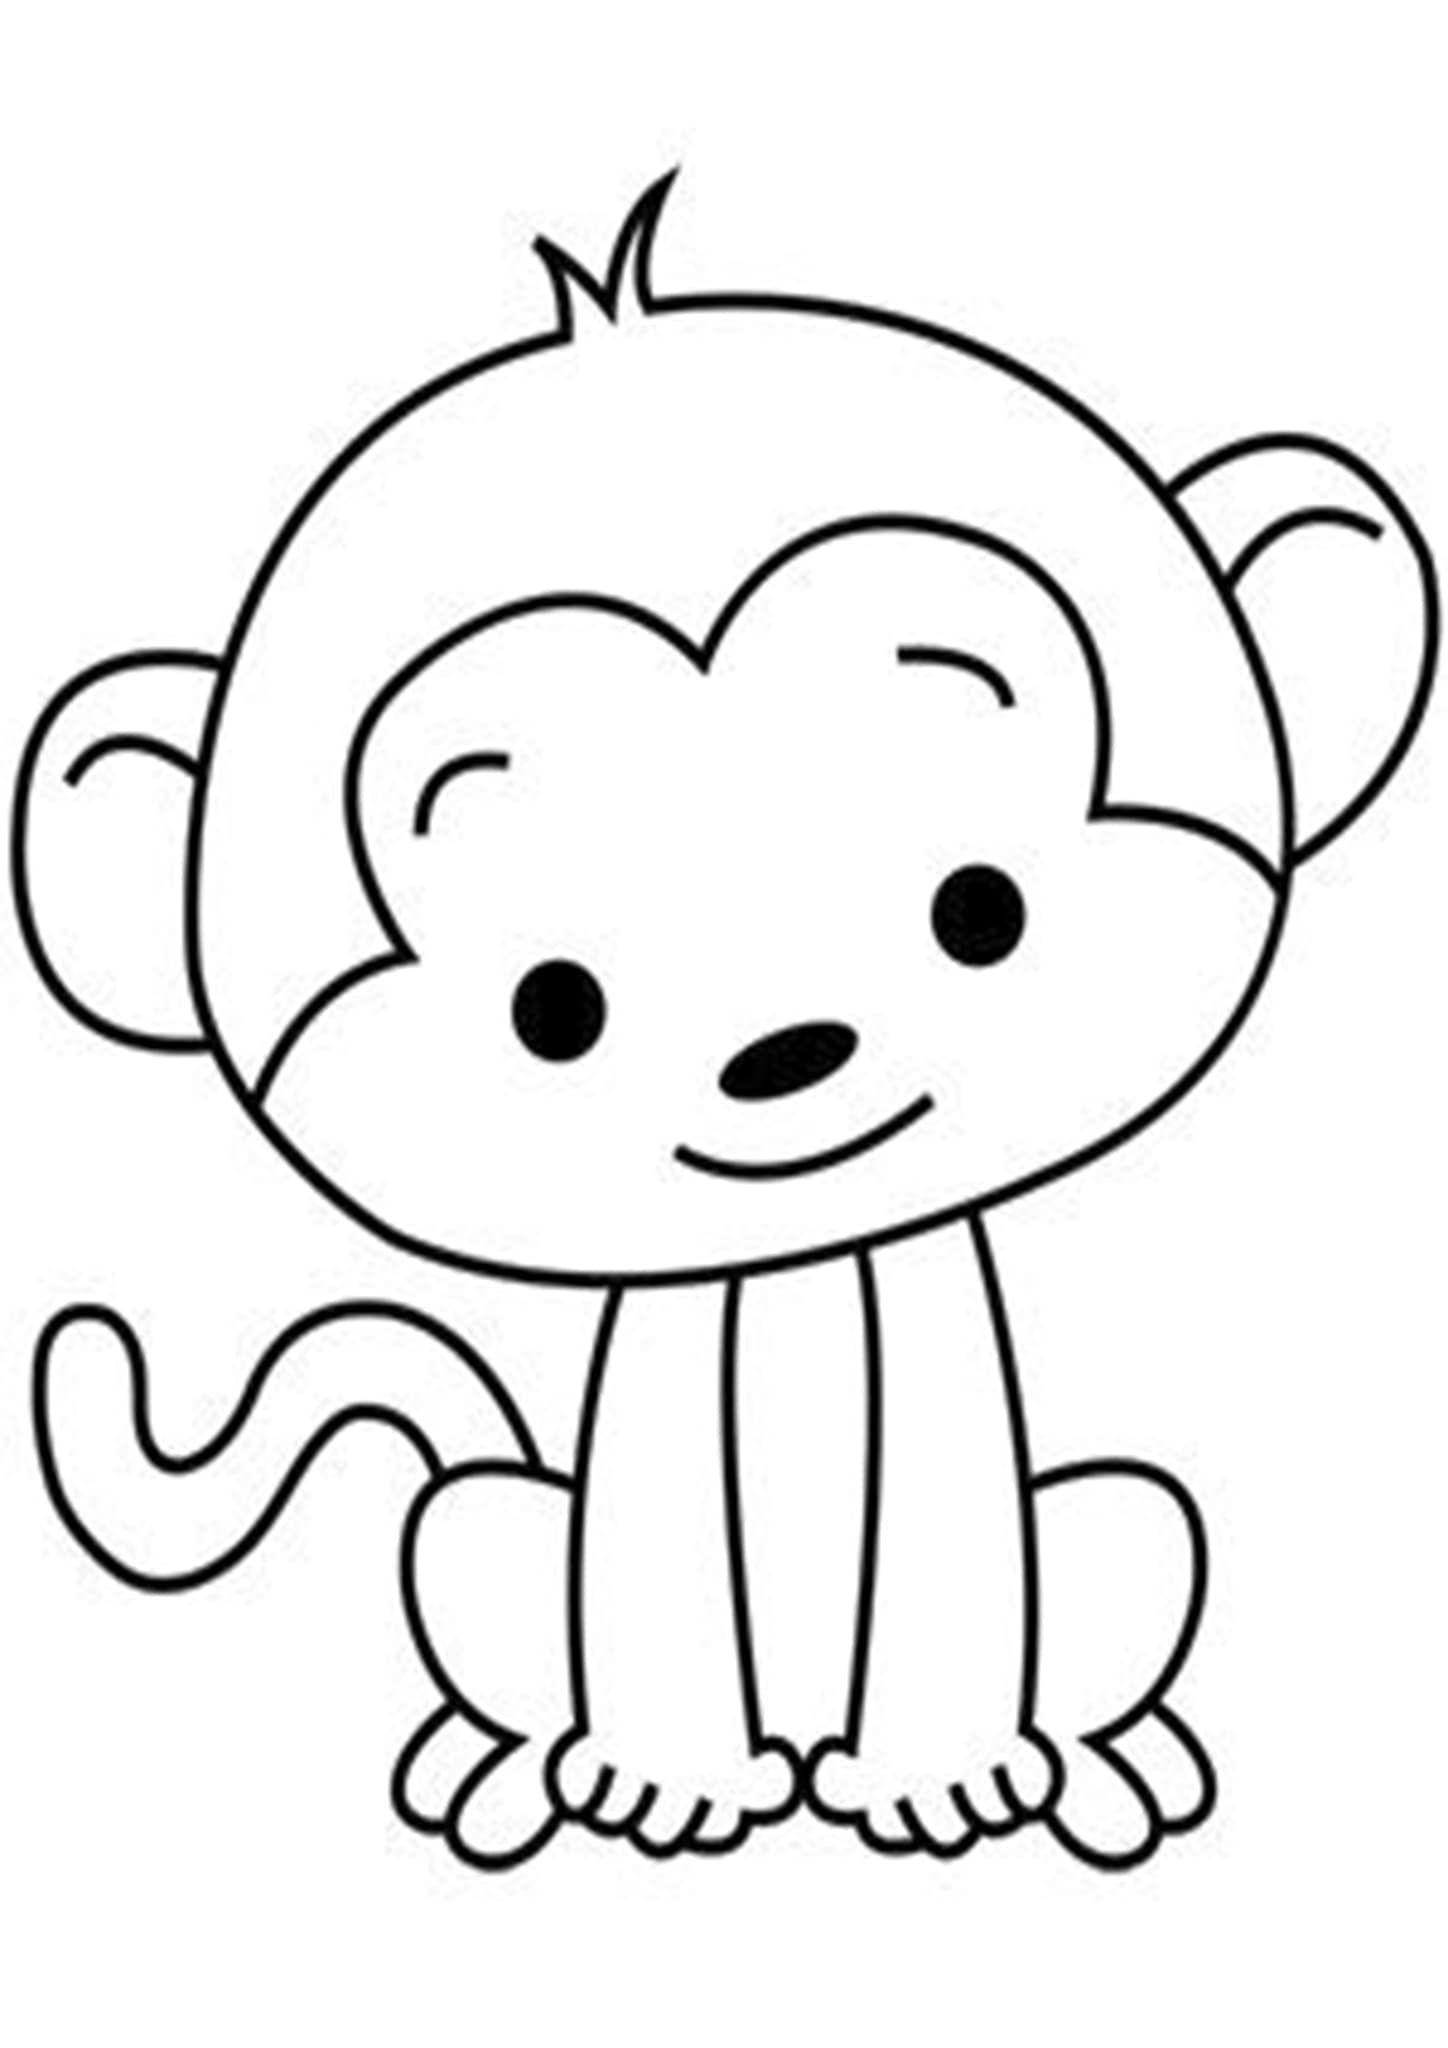 Free Easy To Print Baby Animal Coloring Pages Animal Coloring Pages Coloring Pages Art Drawings For Kids